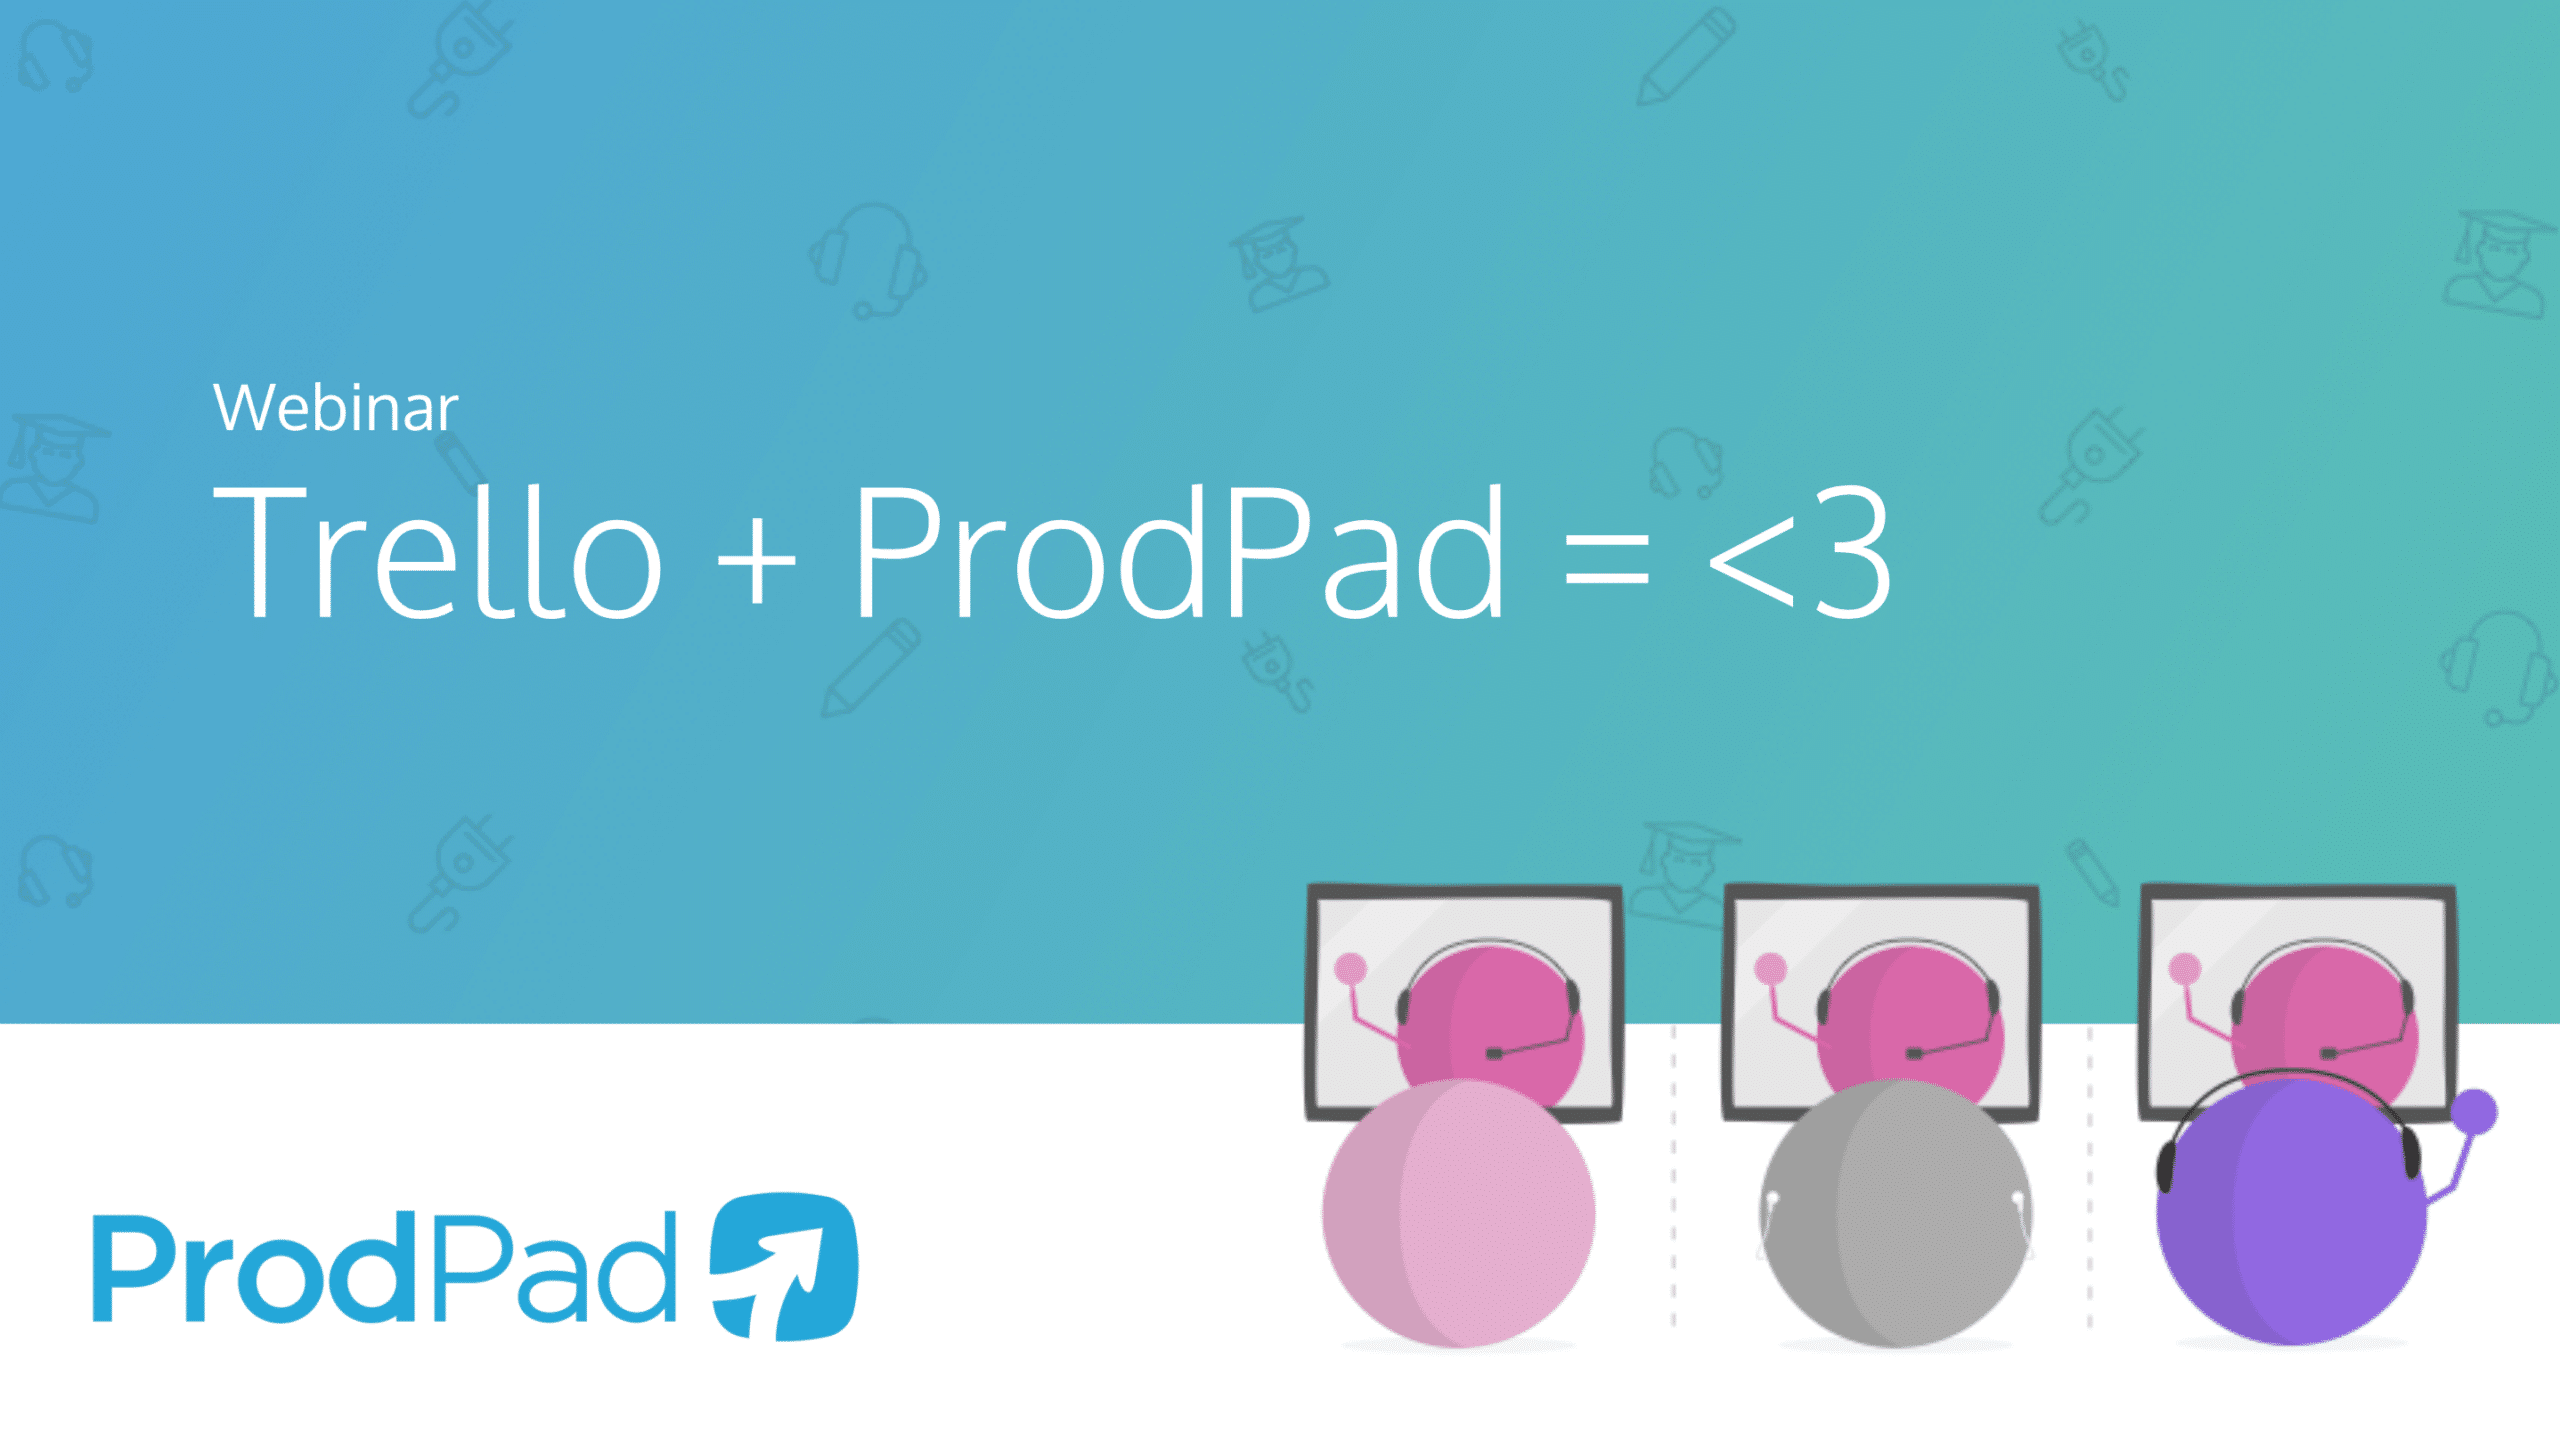 Trello and ProdPad